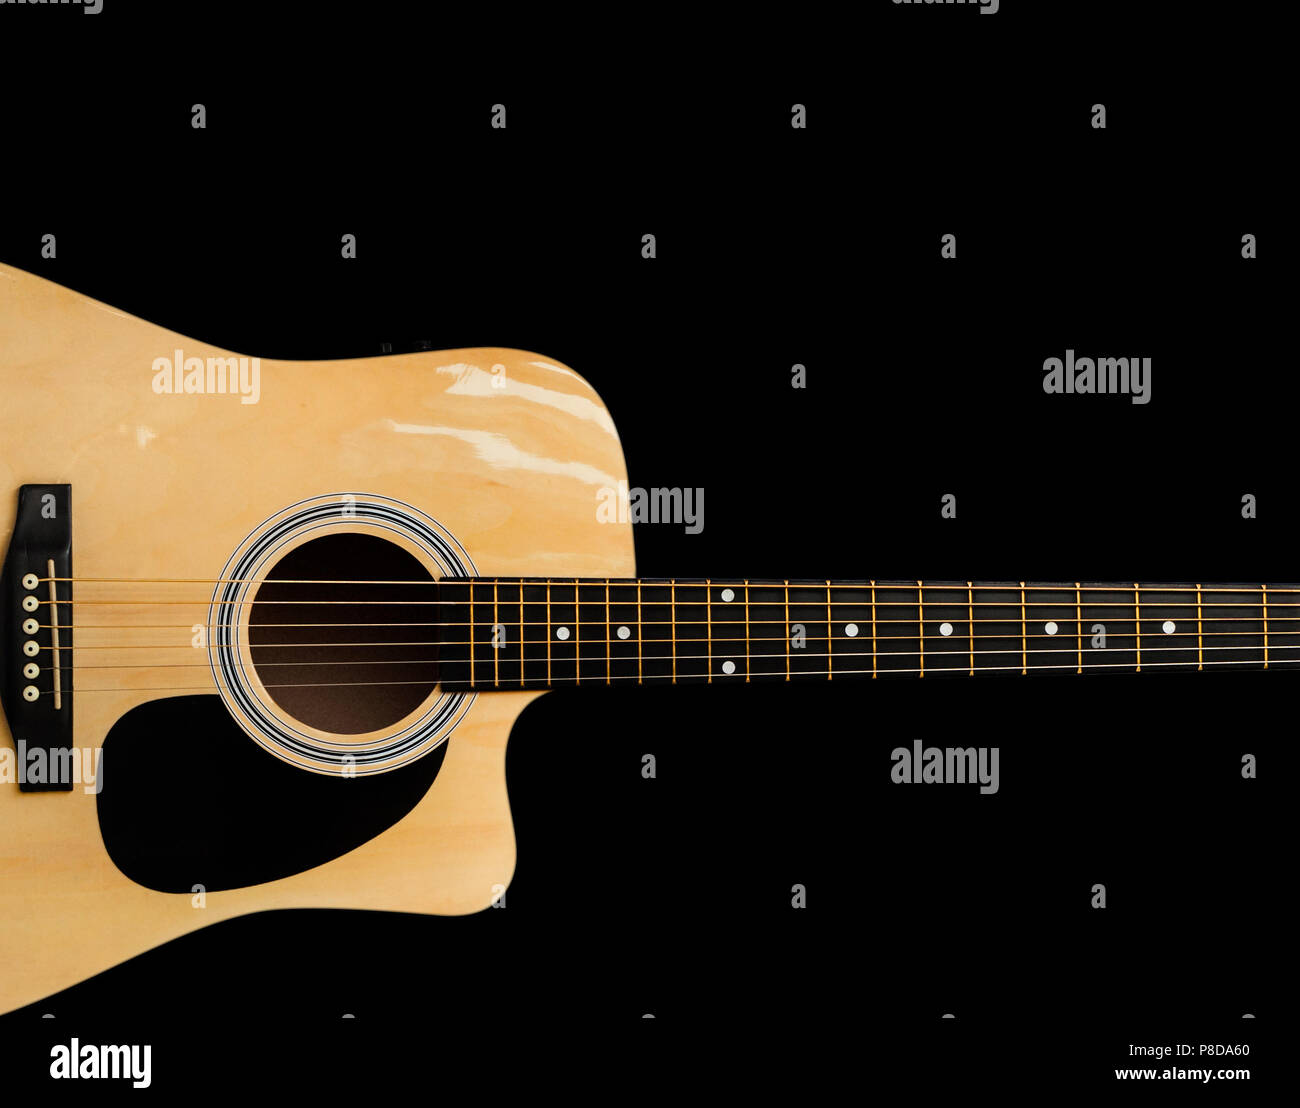 Electro Acoustic Guitar Isolated On Black Background Stock Photo